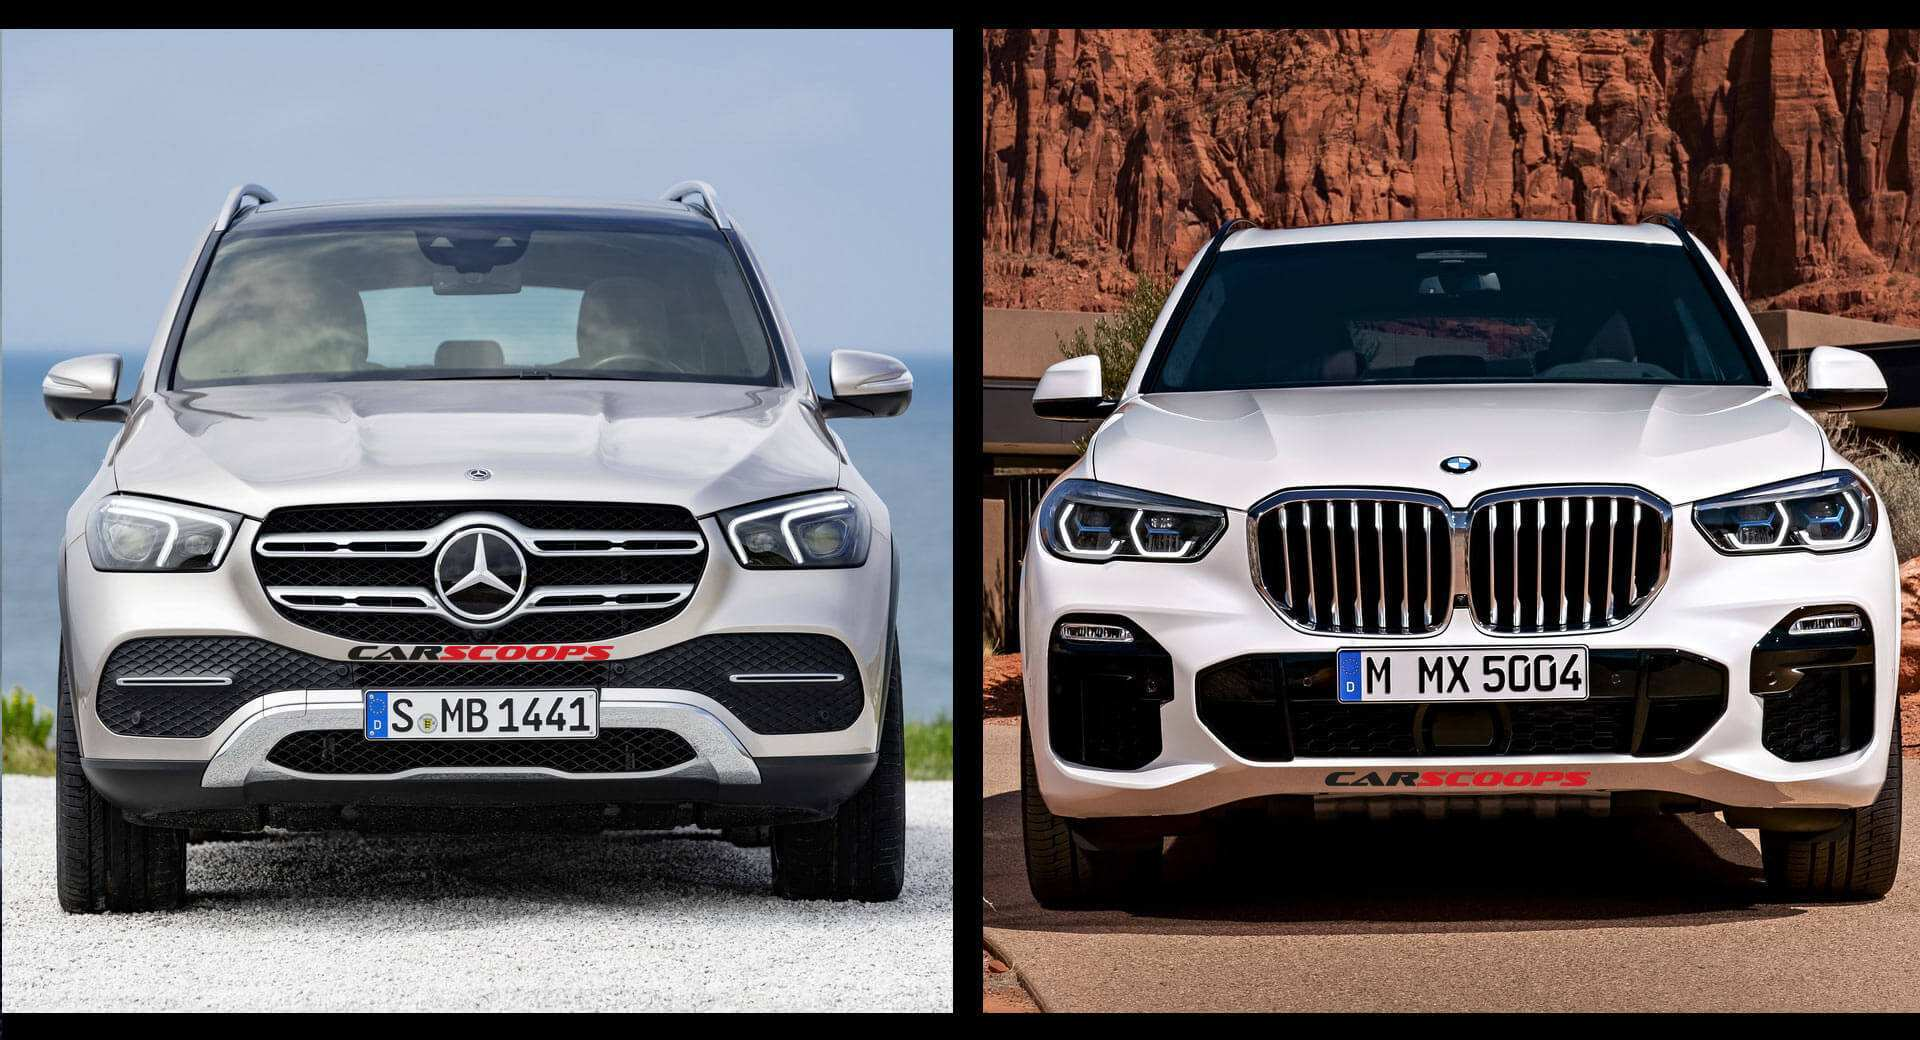 69 All New 2020 Mercedes Gle Vs BMW X5 Ratings with 2020 Mercedes Gle Vs BMW X5